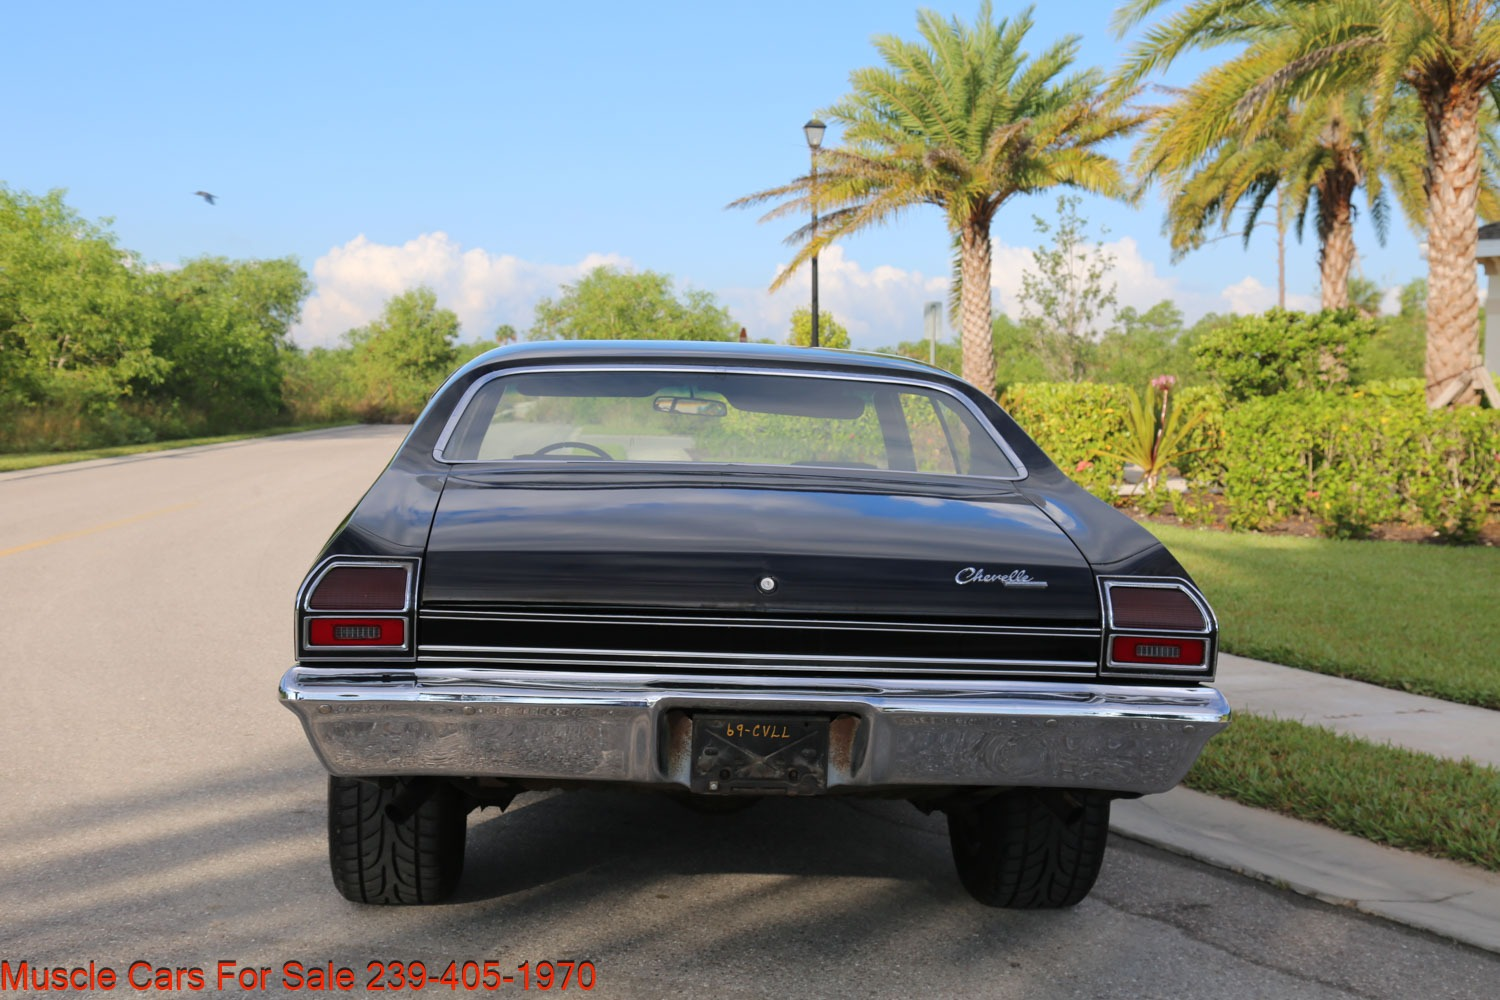 Used 1969 Chevrolet Chevelle Malibu 350 4 Speed for sale Sold at Muscle Cars for Sale Inc. in Fort Myers FL 33912 8